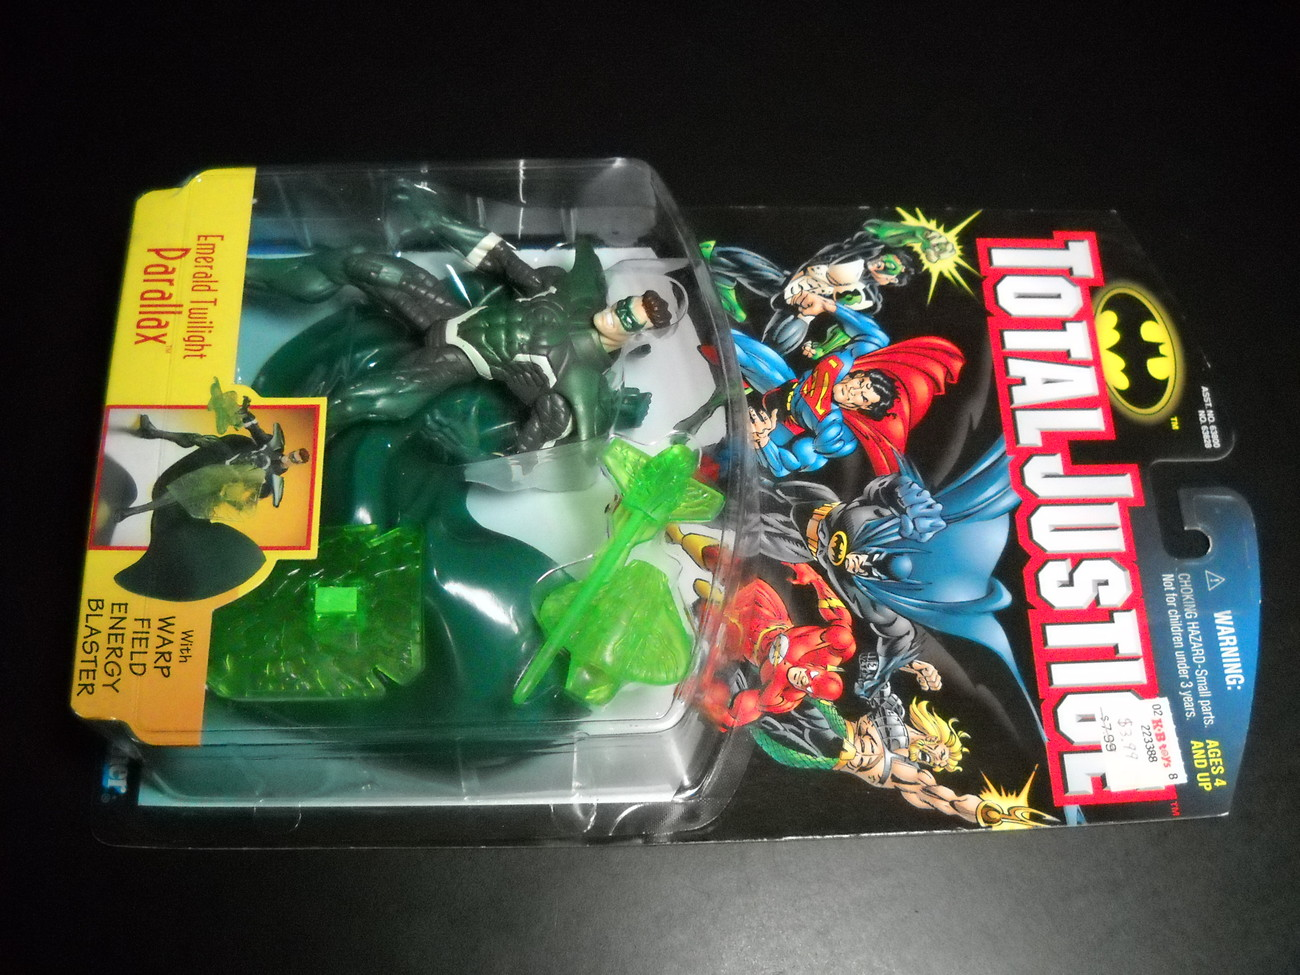 Toy justice league kenner hasbro 1997 total justice emerald twilight parallax moc 01